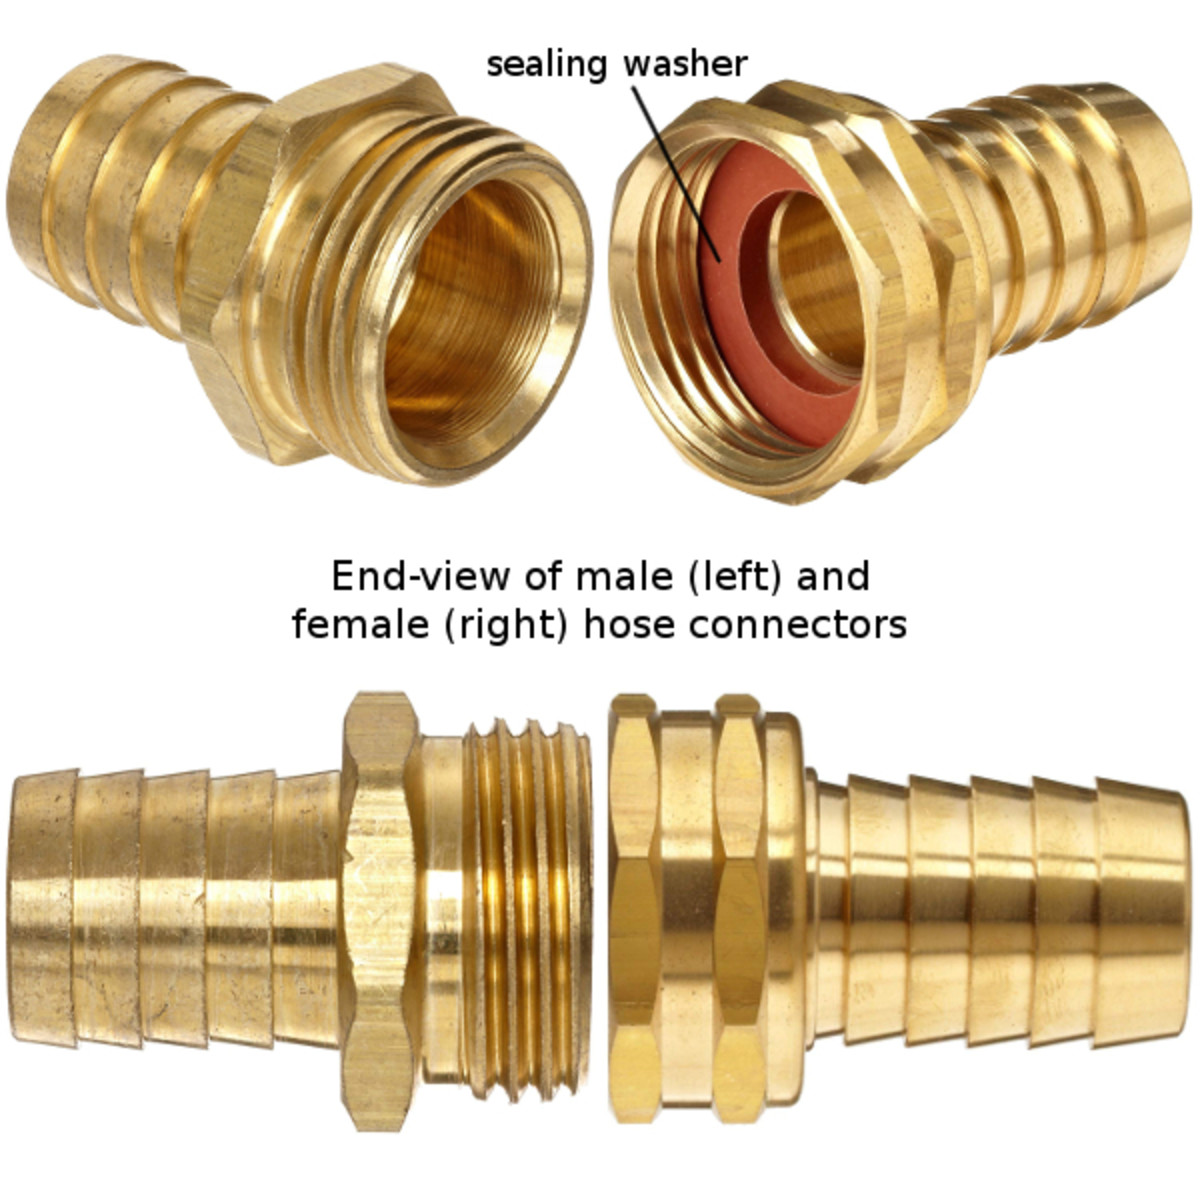 End-view of male (left) and female (right) hose connectors.